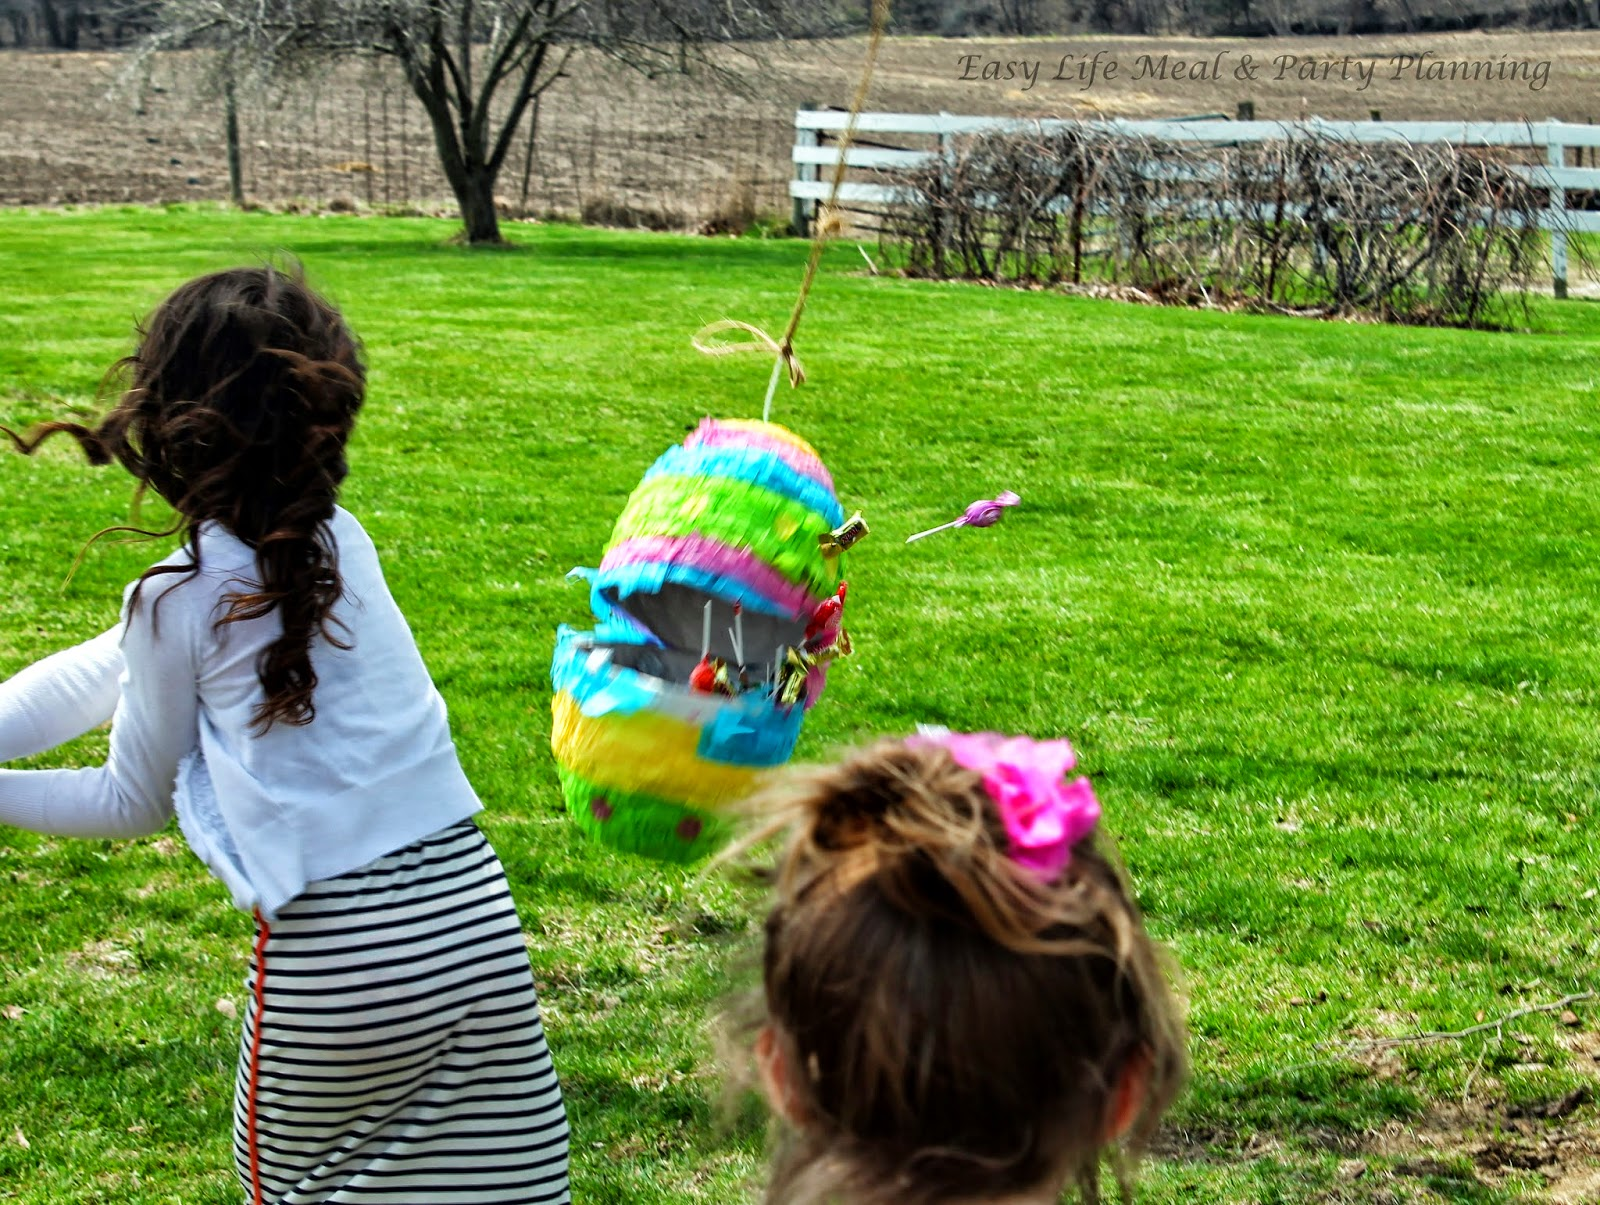 Easter on the Farm - Pinanta - Easy Life Meal & Party Planning